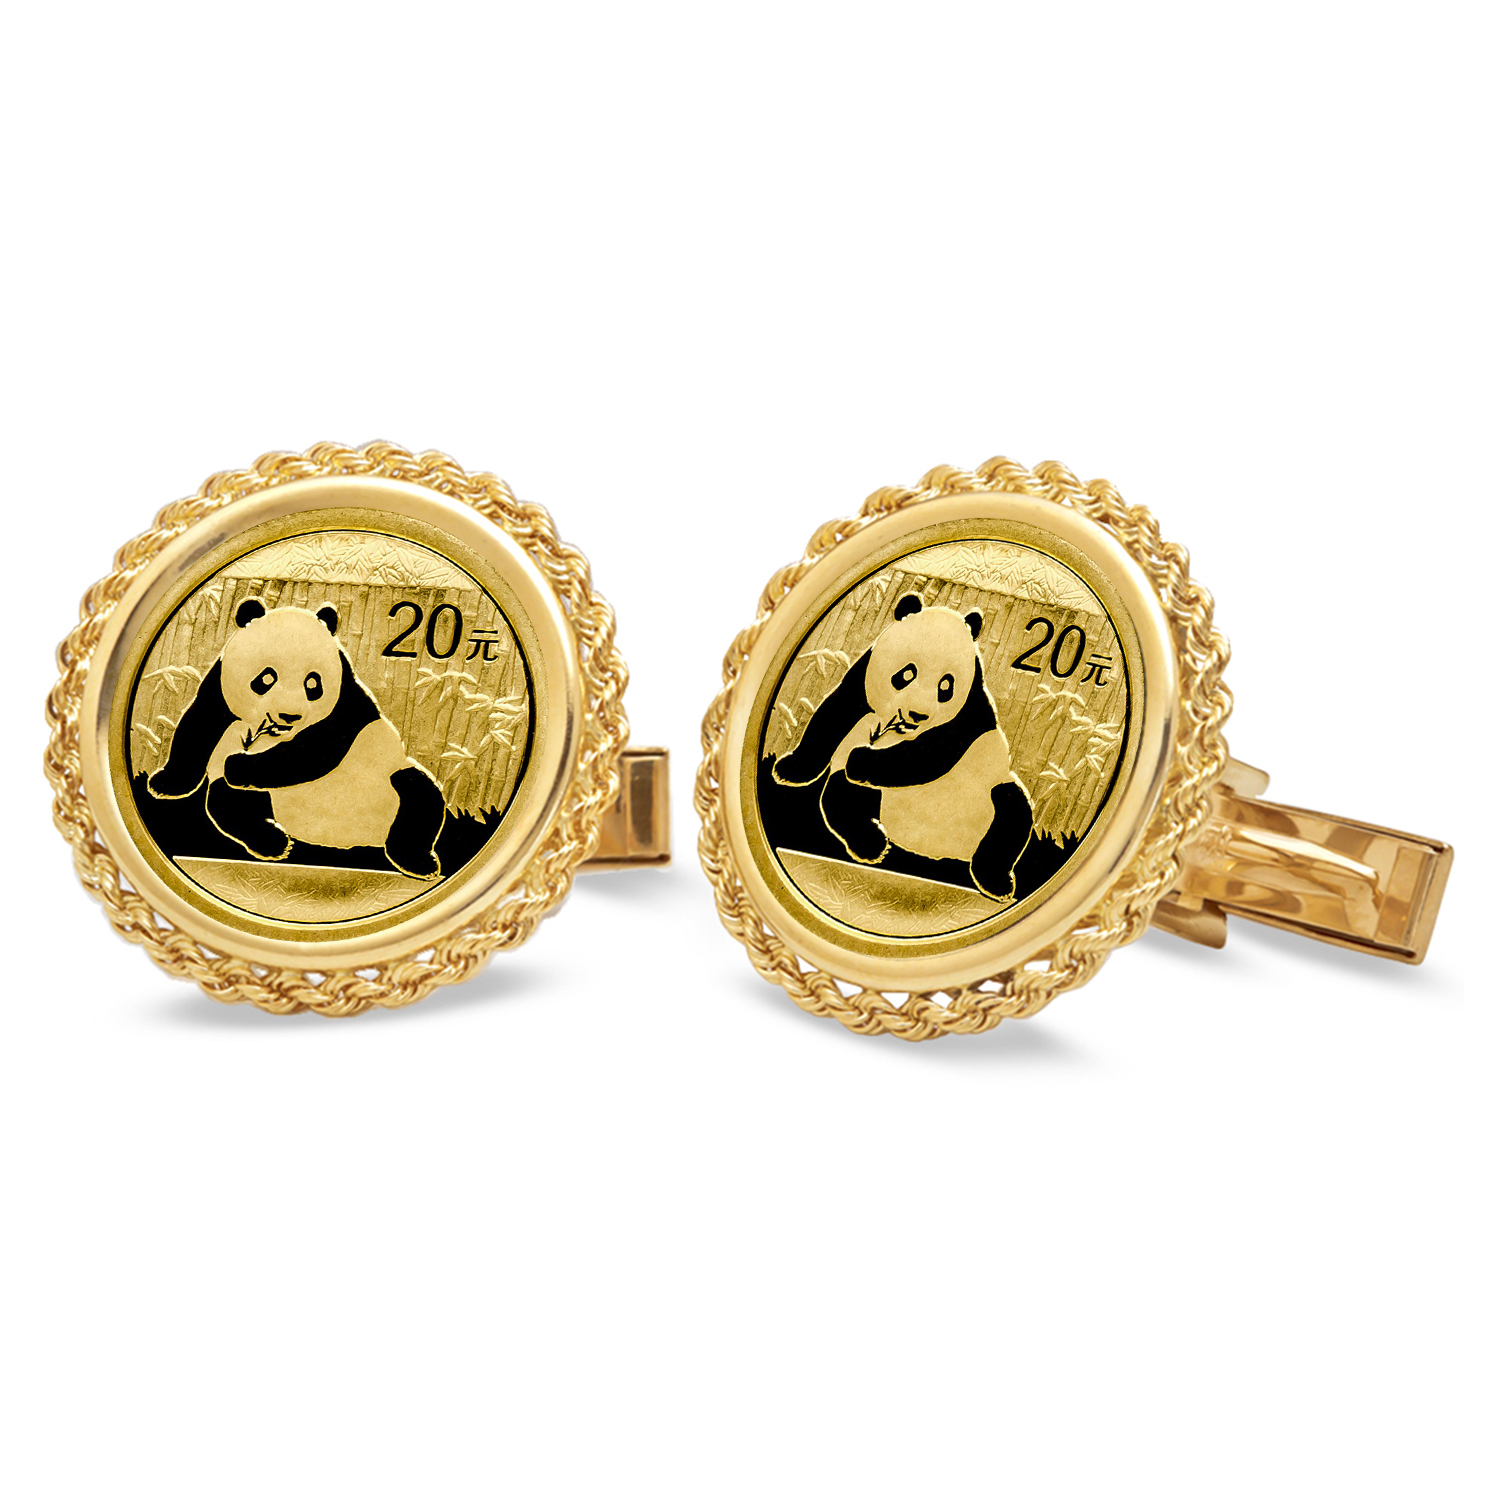 14k Gold Rope Polished Coin Cuff Links - 14 mm